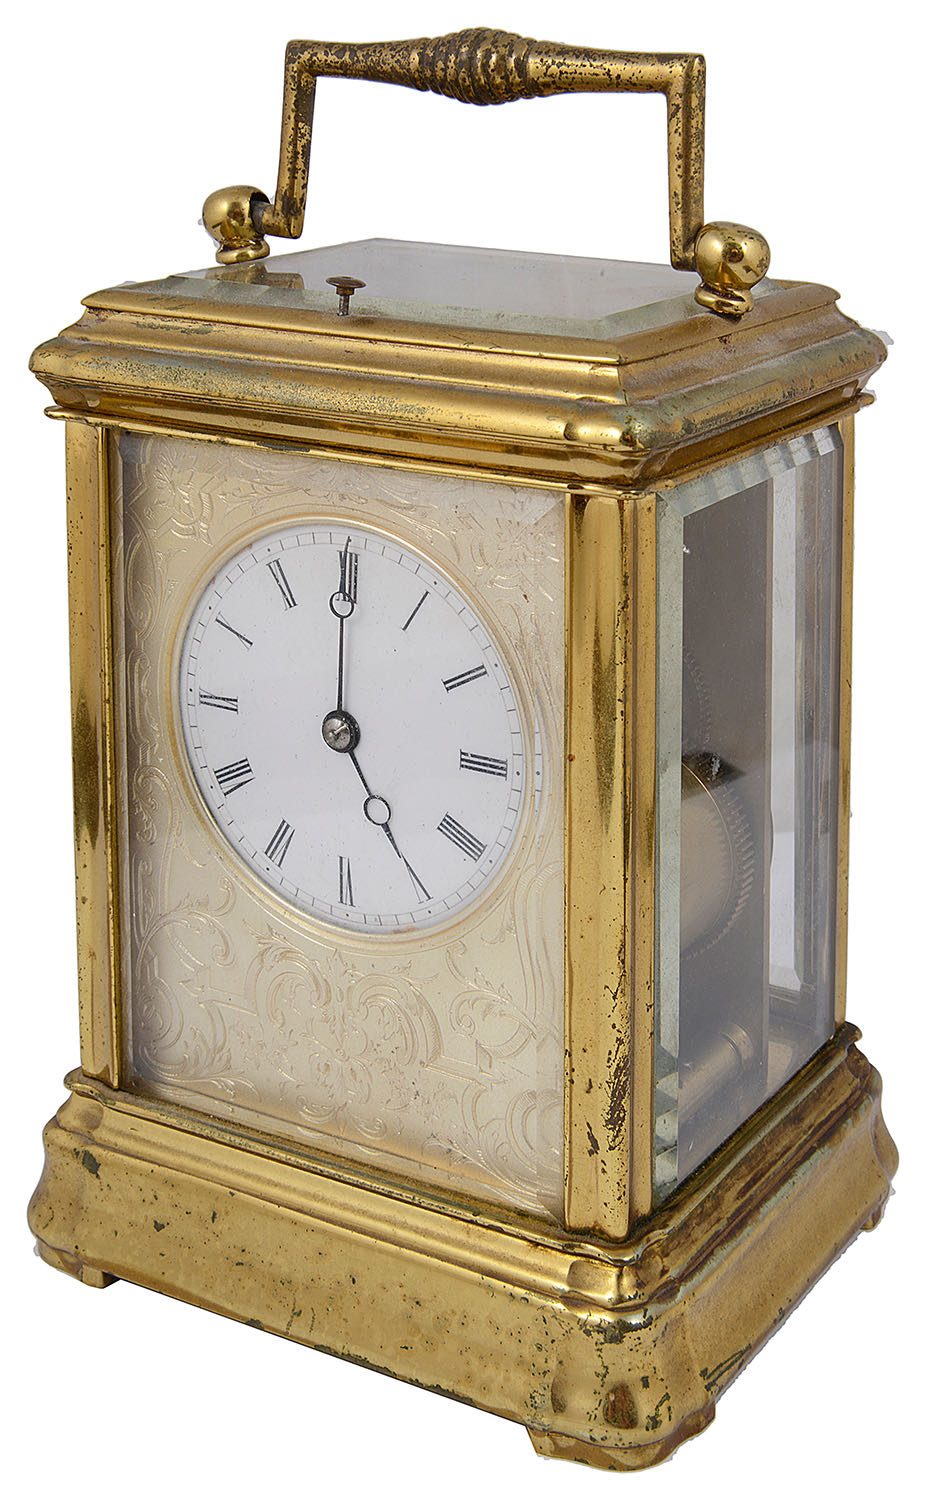 Lot 26 - A late 19th century French gilt brass repeating carriage clock